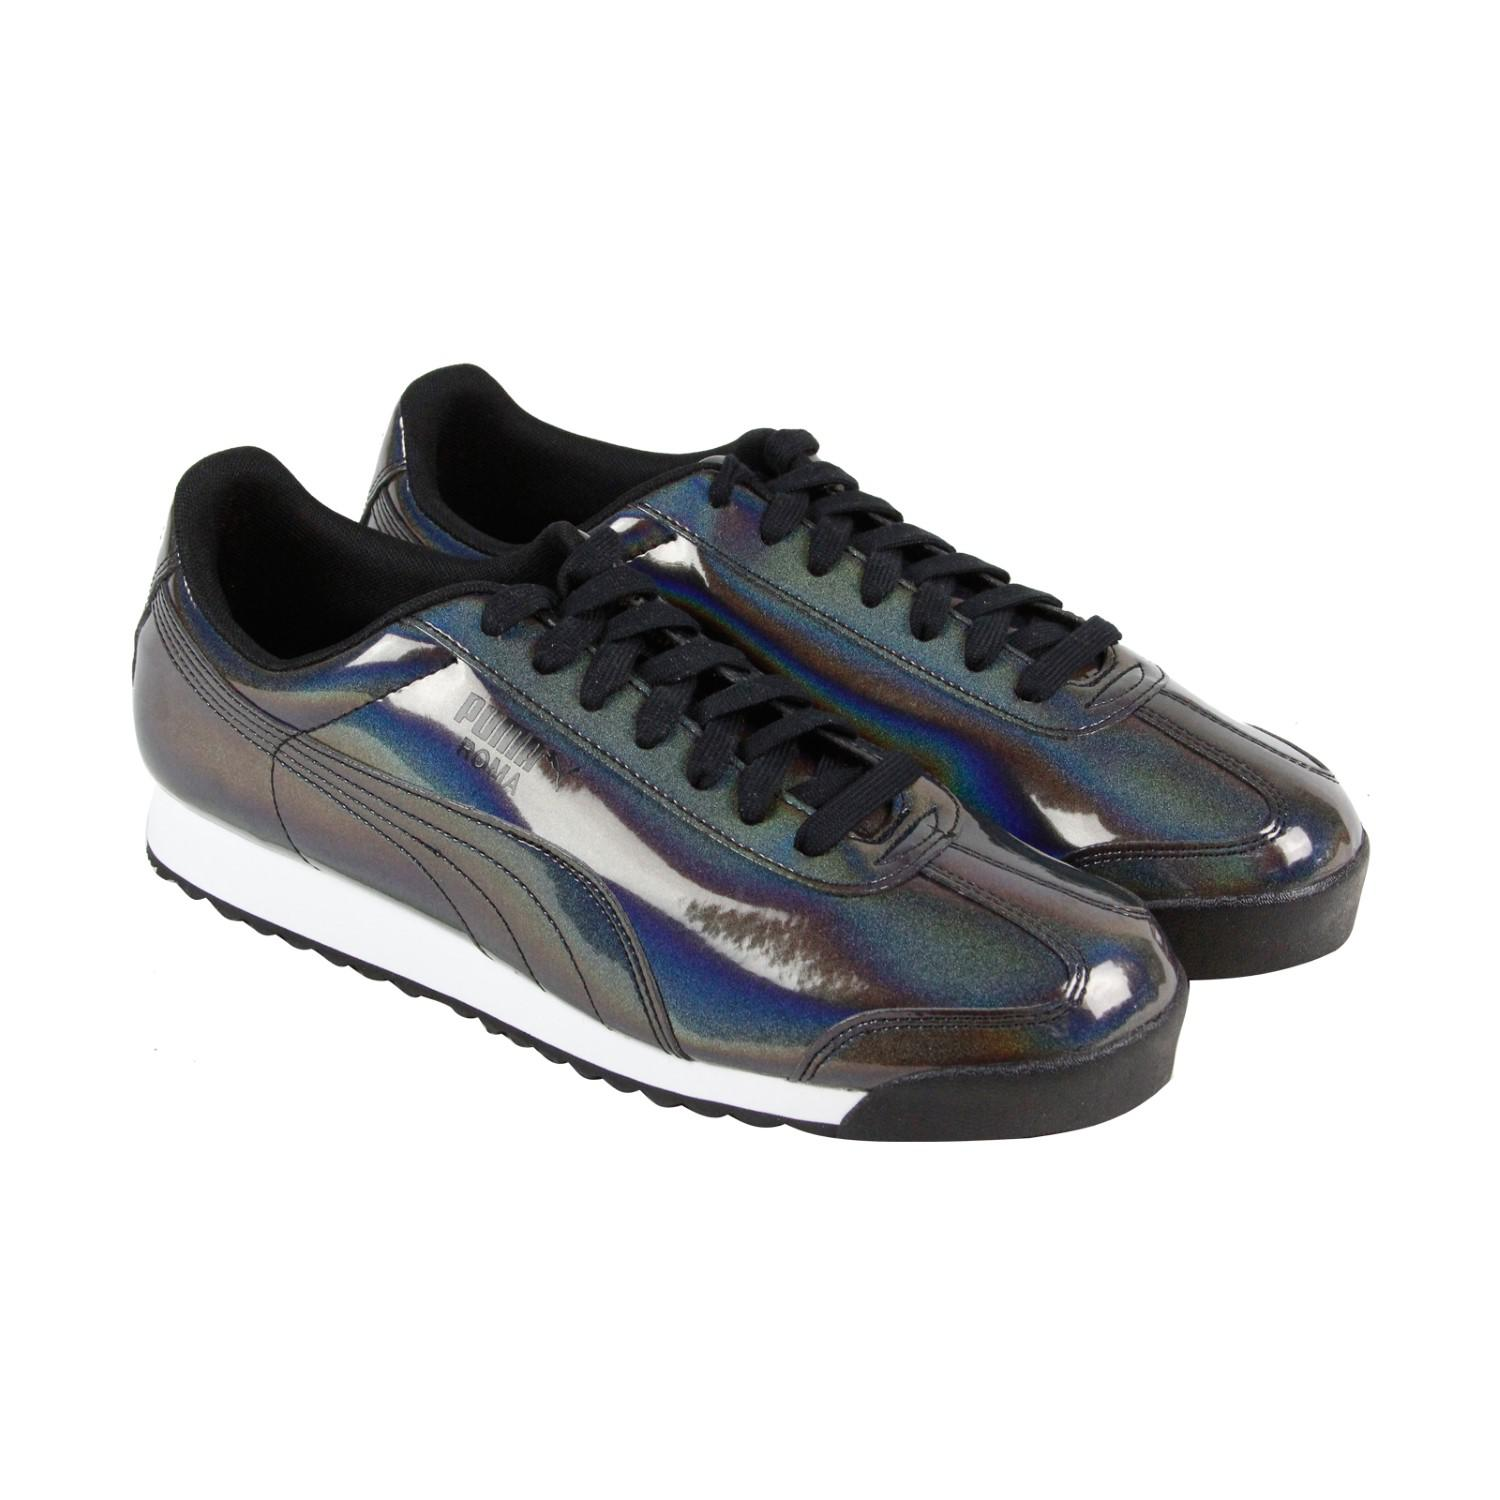 984cefaa0828 ... Lyst - Puma Roma Ao Iridescent Black Mens Lace Up Sneakers i 2018  factory 9fee6 8d7ca ...